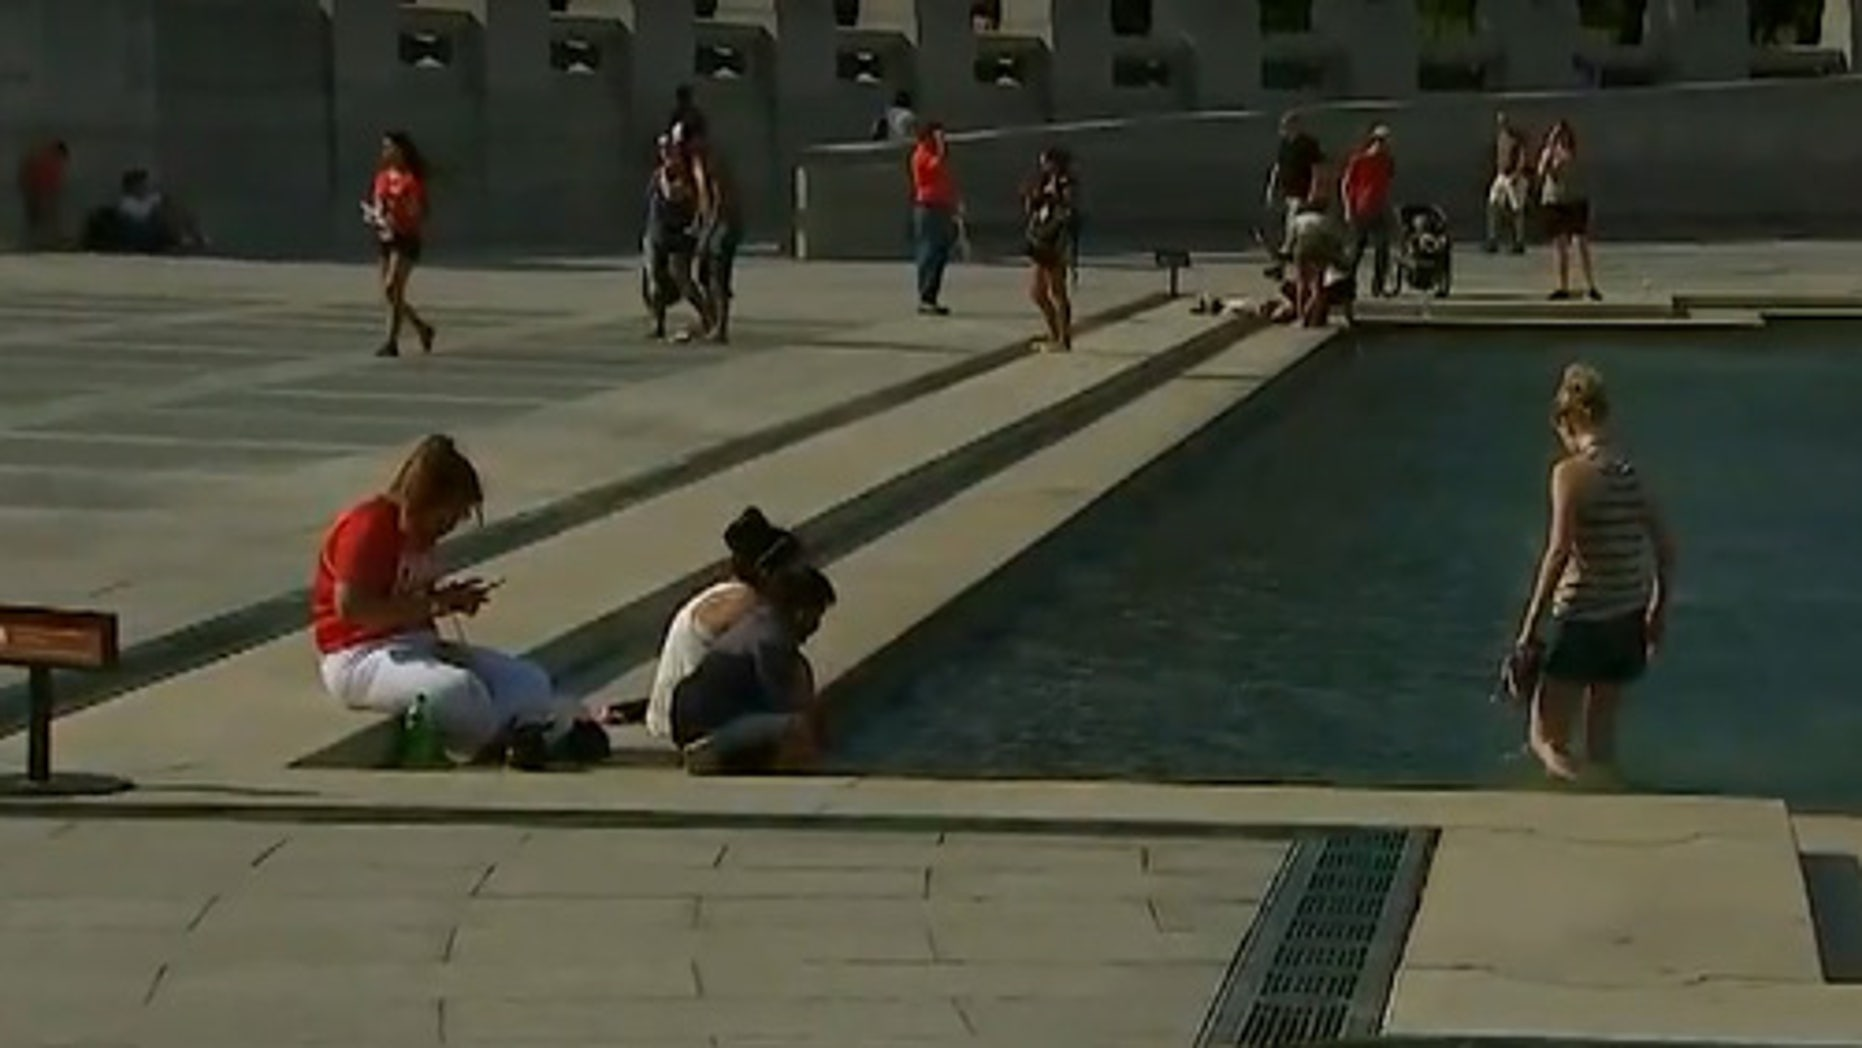 July 2016: Visitors to the National World War II Memorial, Washington, D.C. Fox 5 News